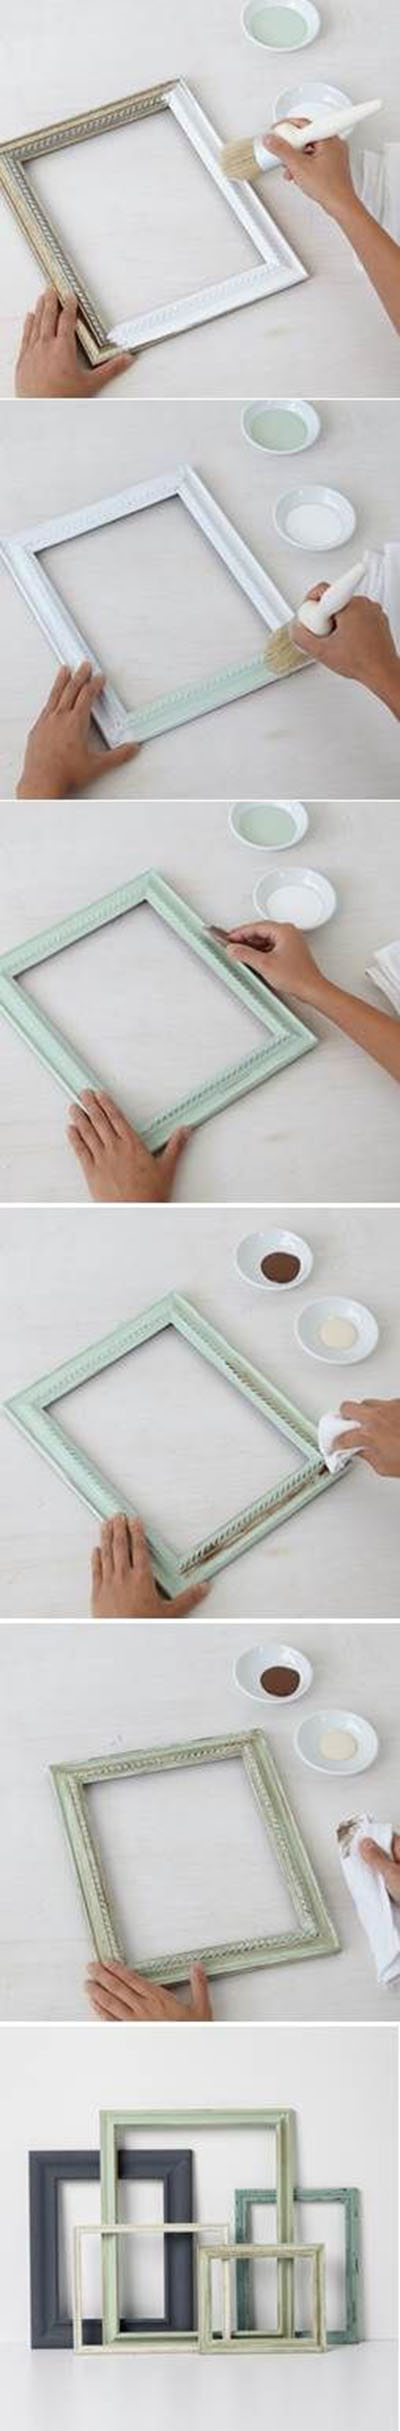 3 Make beautiful frames with Vintage Decor Paint and Wax 829acd1